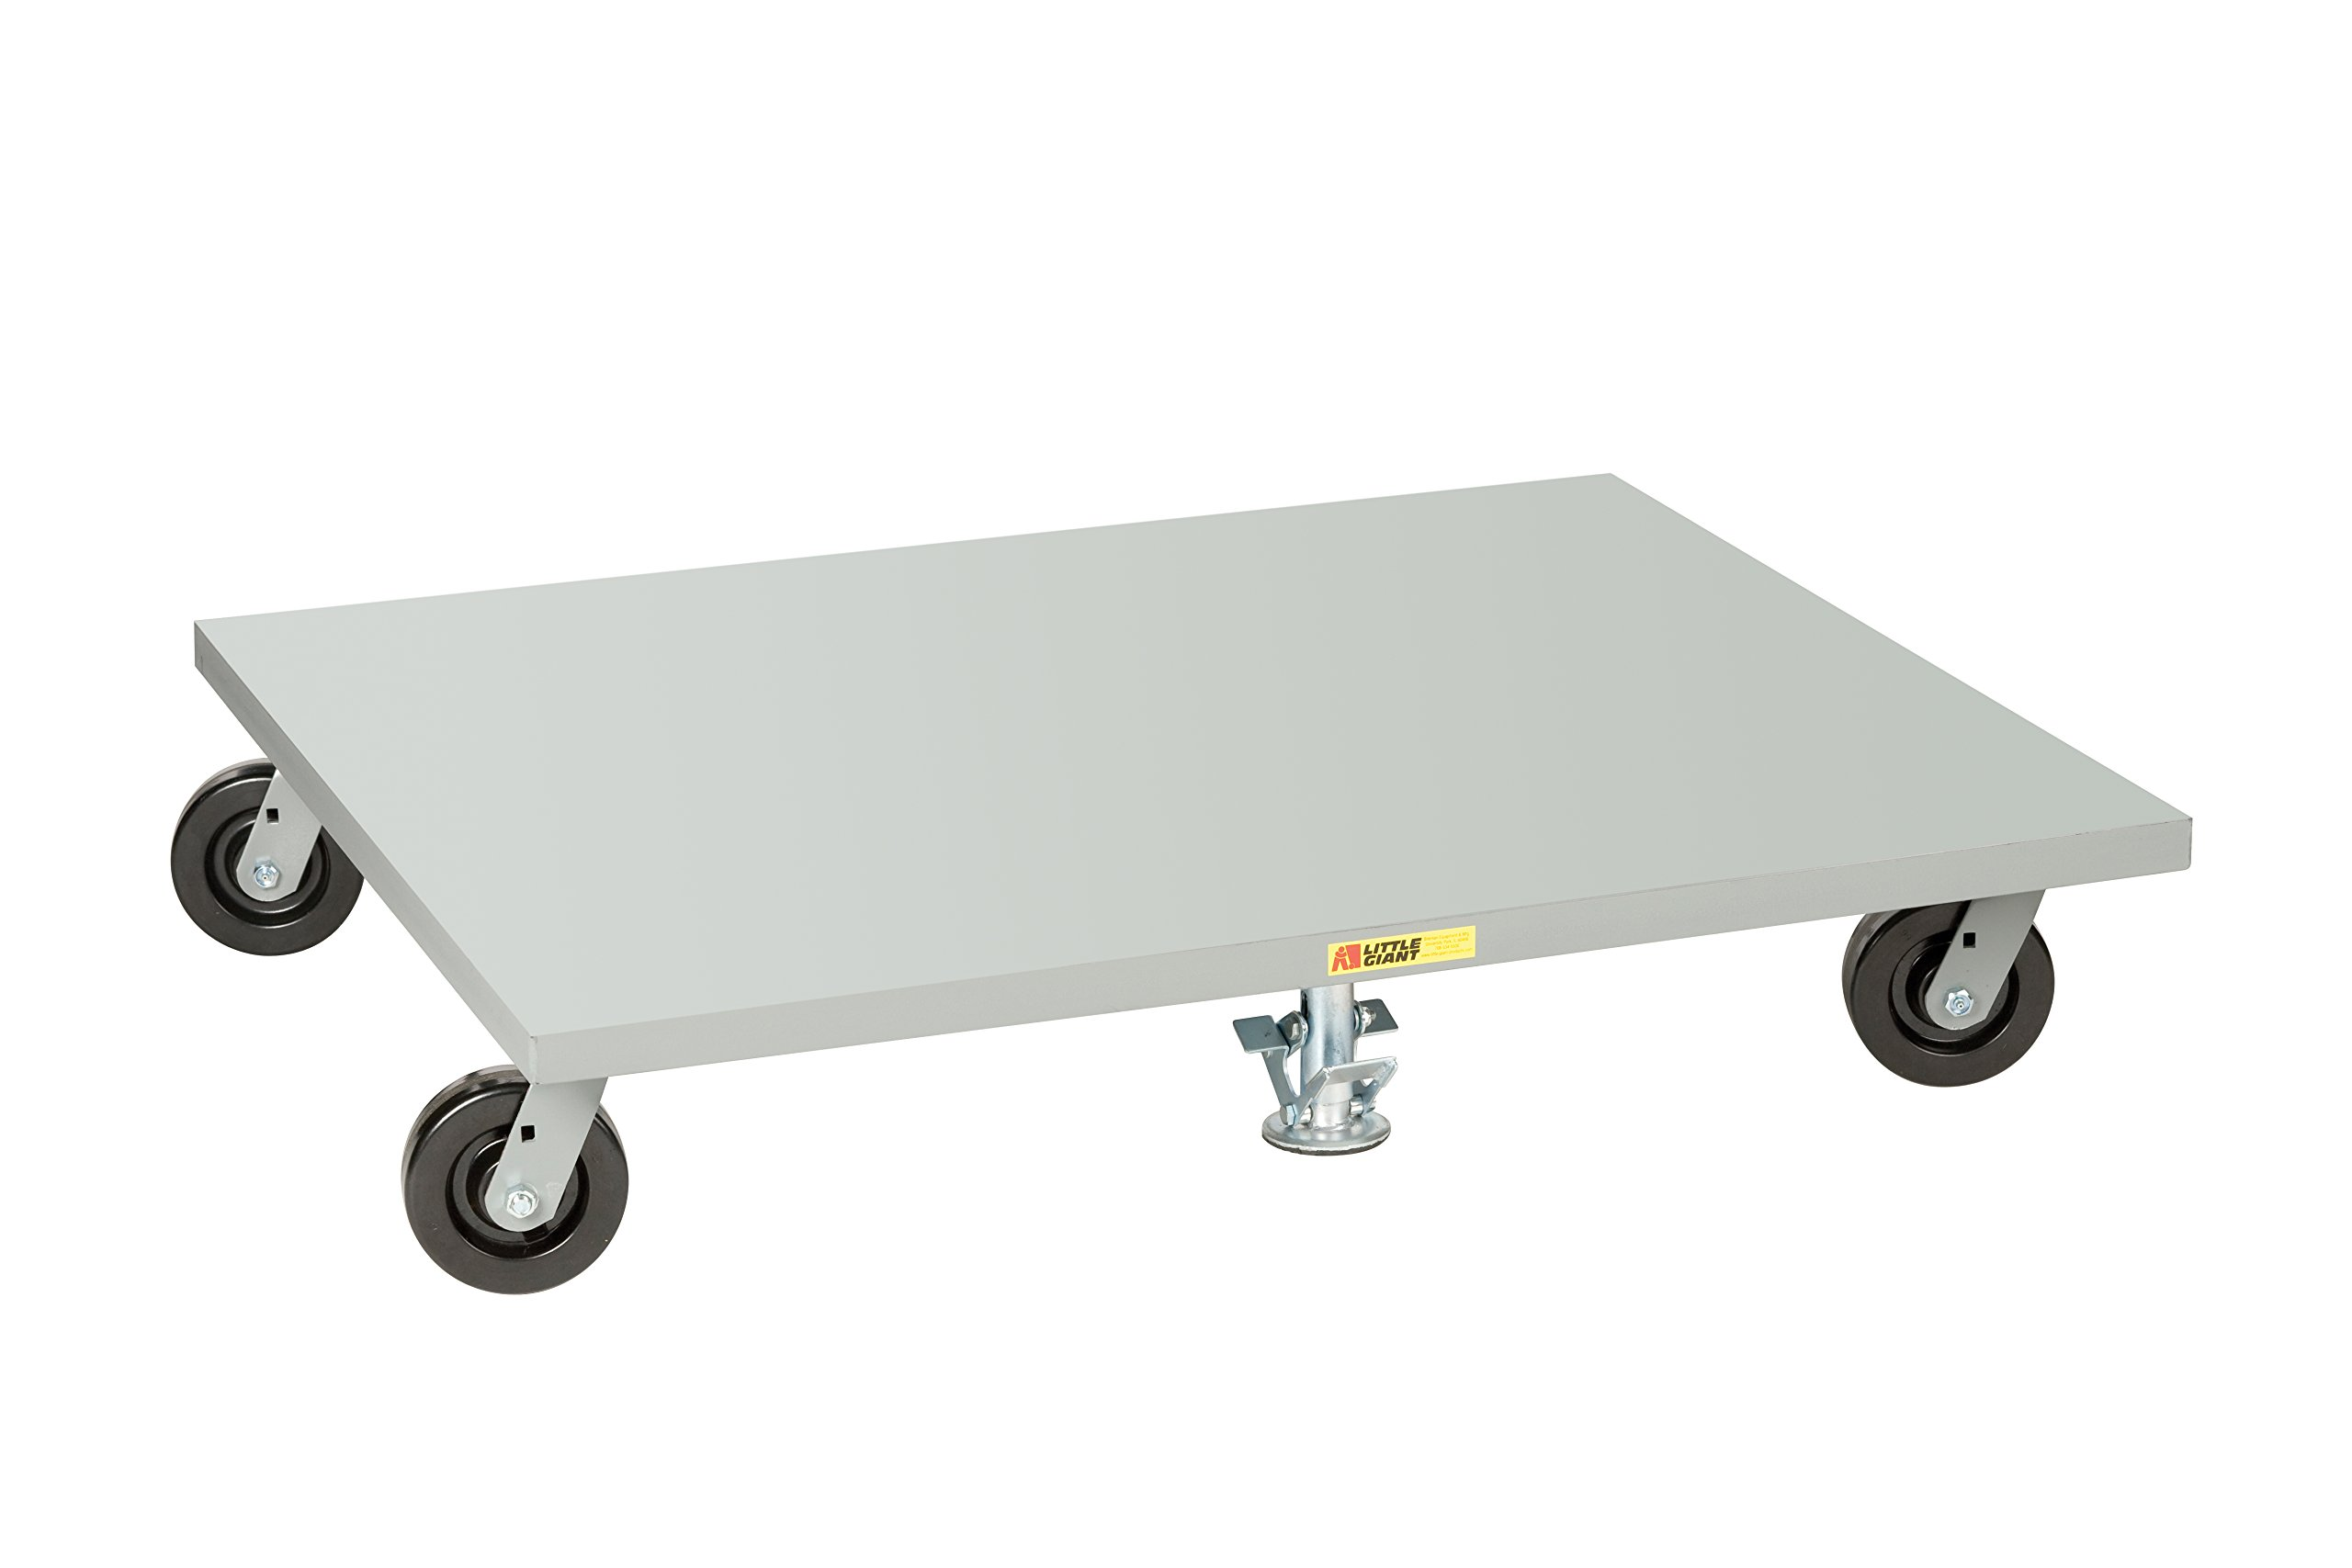 Little Giant PDS4248-6PH2FL Solid Deck Pallet Dolly, 42'' x 48'', Gray by LITTLE GIANT (Image #1)